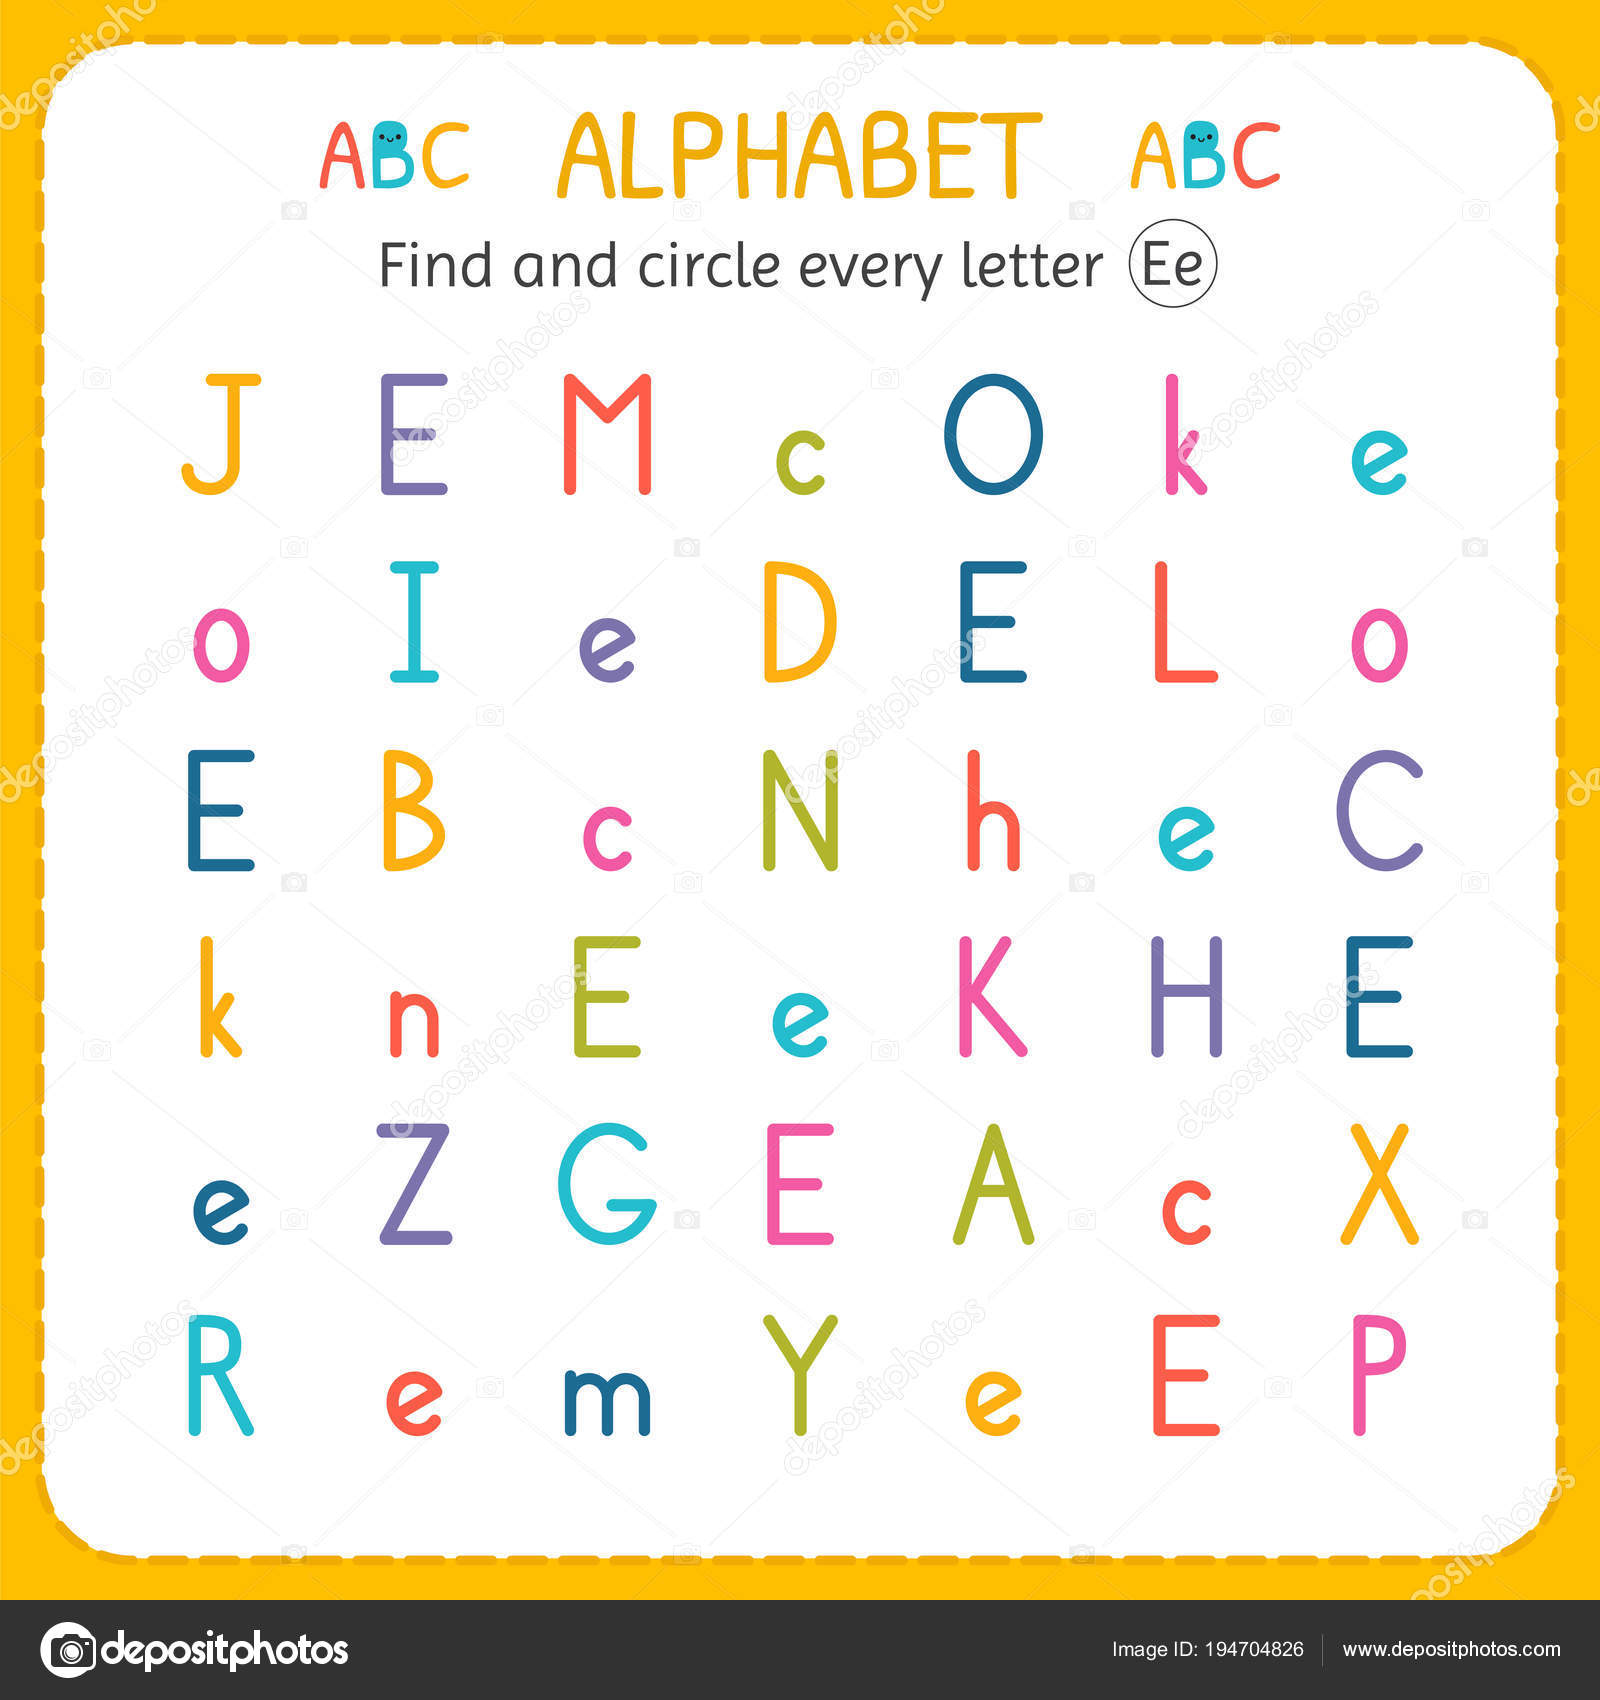 Find And Circle Every Letter E Worksheet For Kindergarten And Preschool Exercises For Children